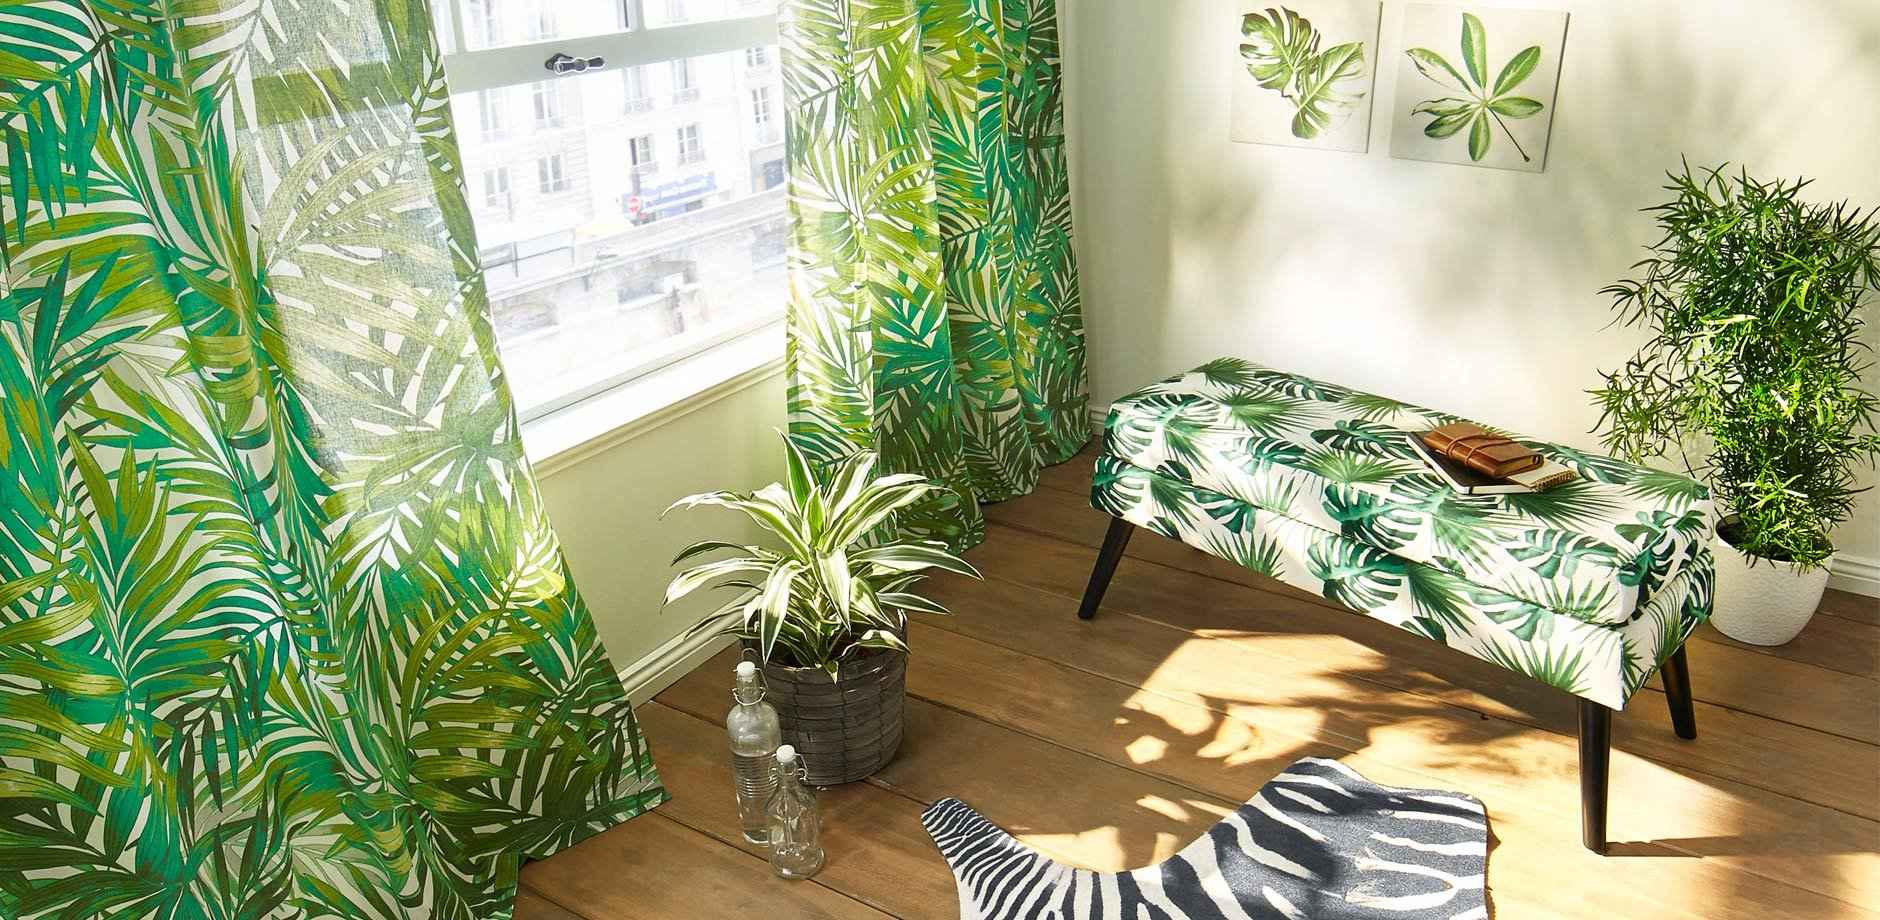 Maison - Tendances & occasions - Tendances   - Jungle urbaine